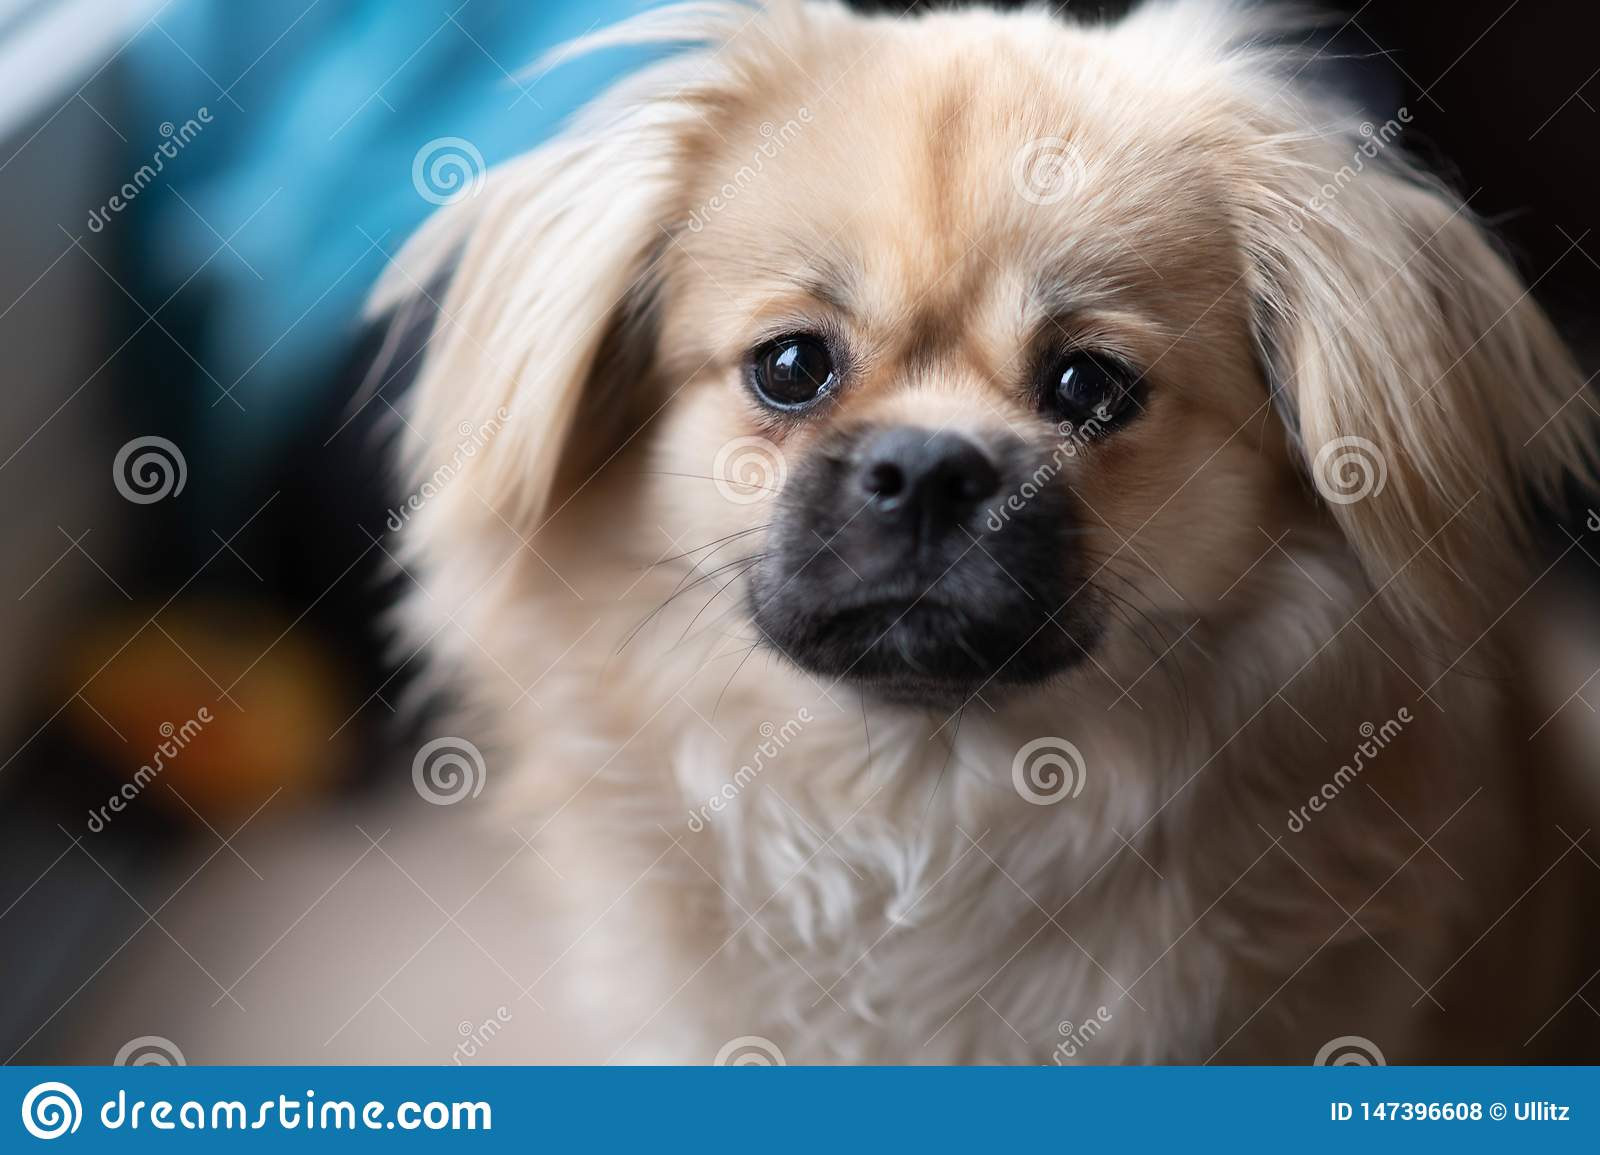 42 Young Tibetan Spaniel Photos Free Royalty Free Stock Photos From Dreamstime